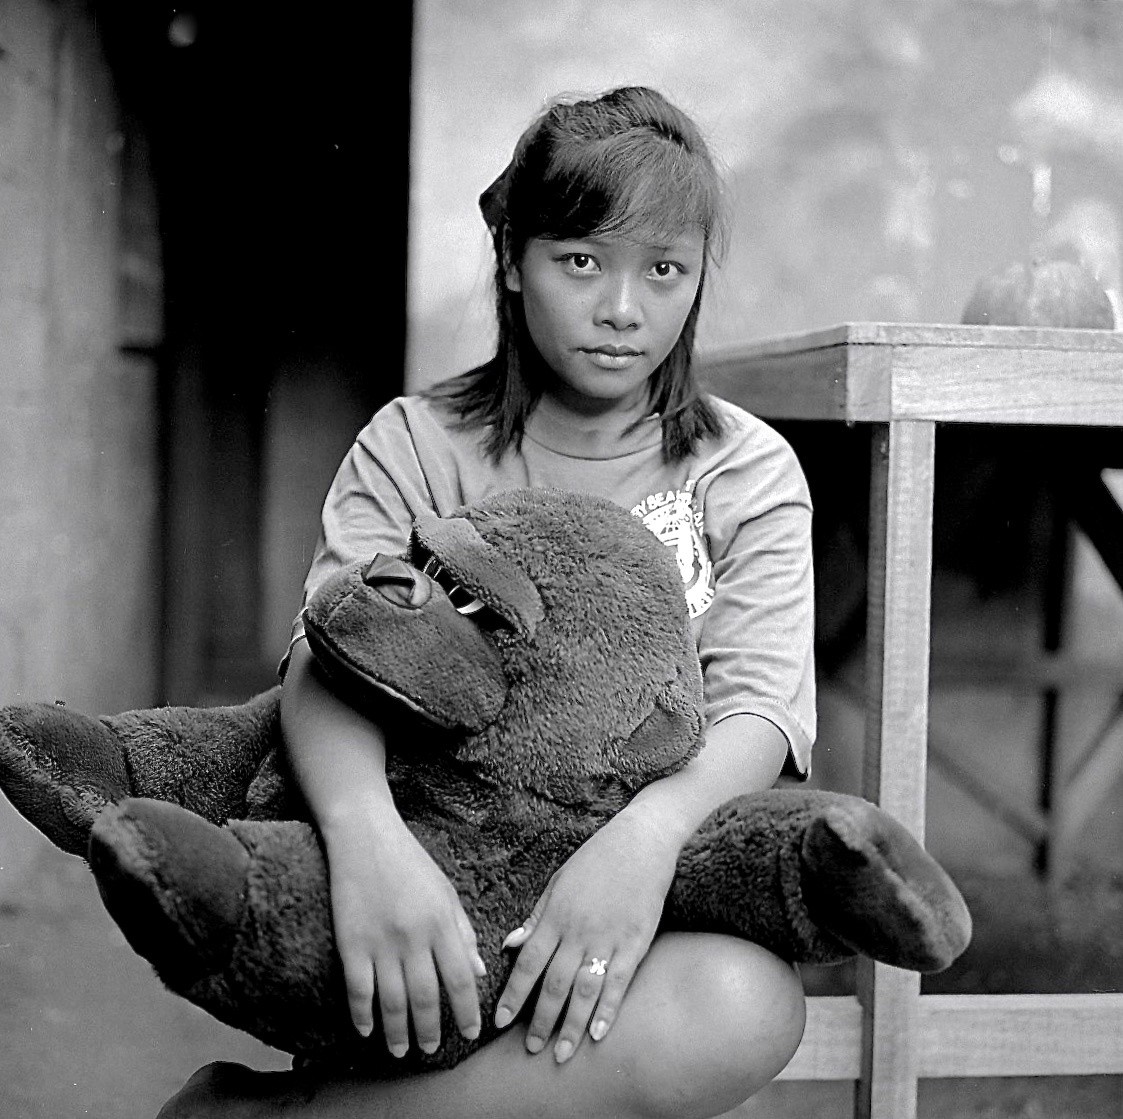 Girl With Stuffed Gorilla, Subic City, 1991